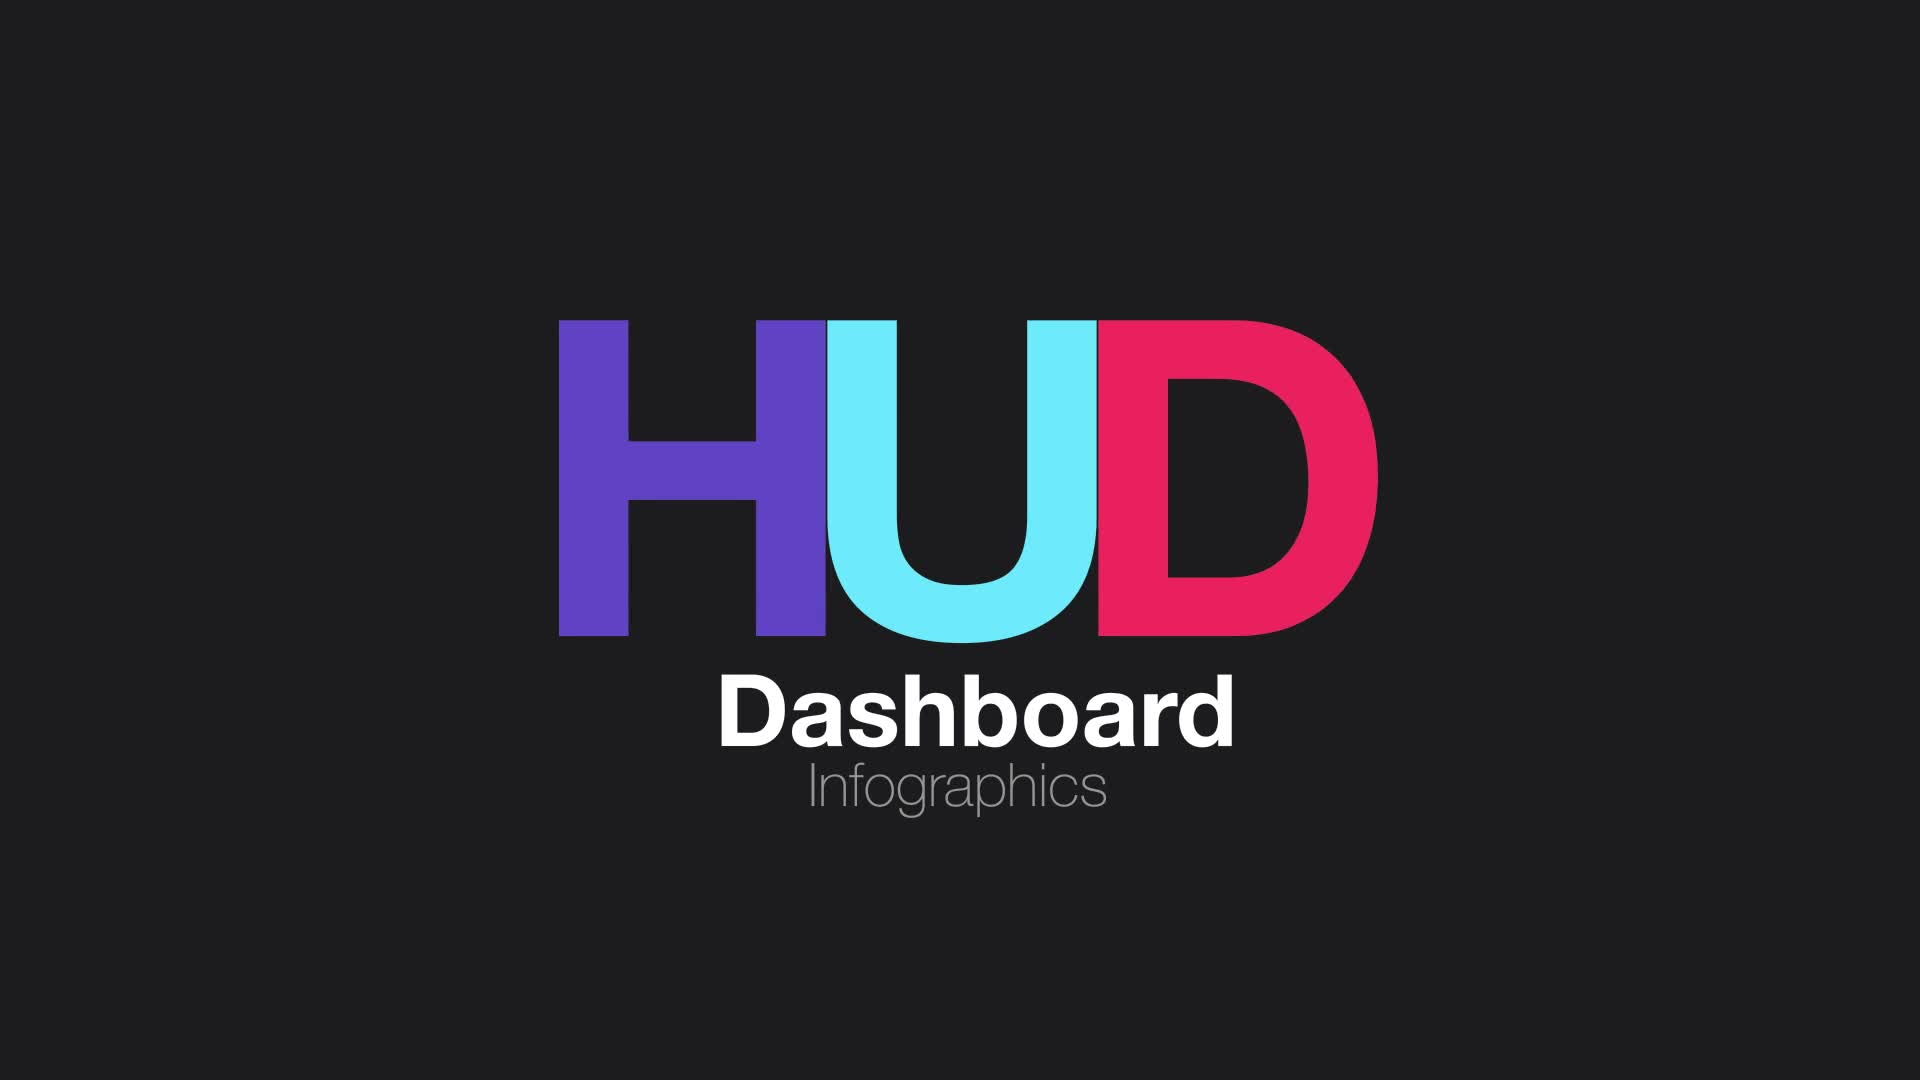 HUD Dashboard Infographics Essential Graphics for Premiere Pro Videohive 31652530 Premiere Pro Image 1